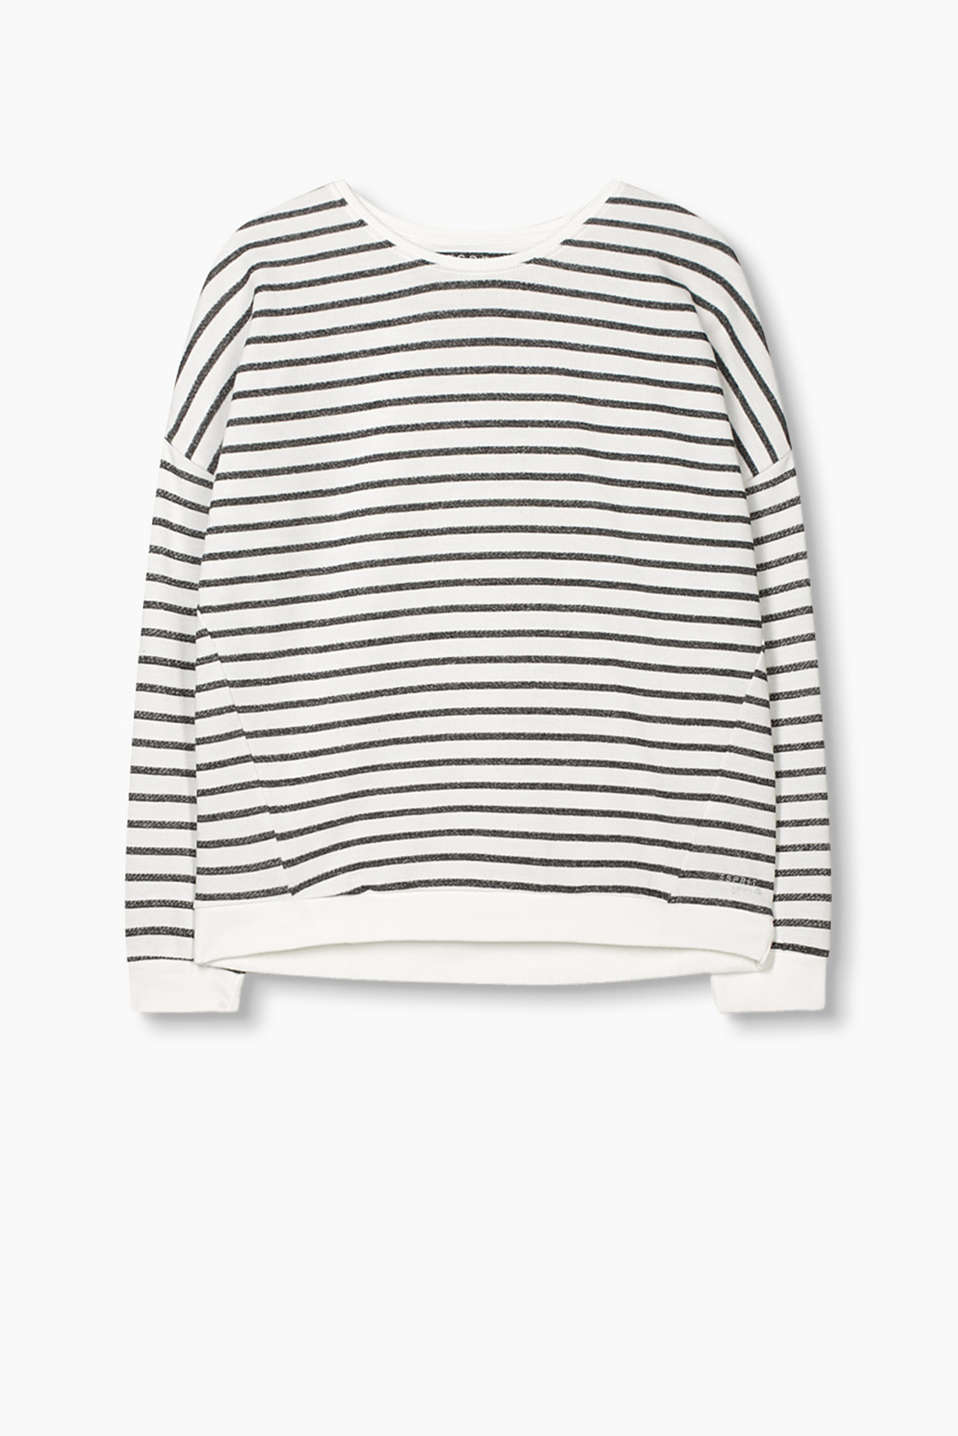 Striped T-shirt with dropped shoulders in 100% cotton